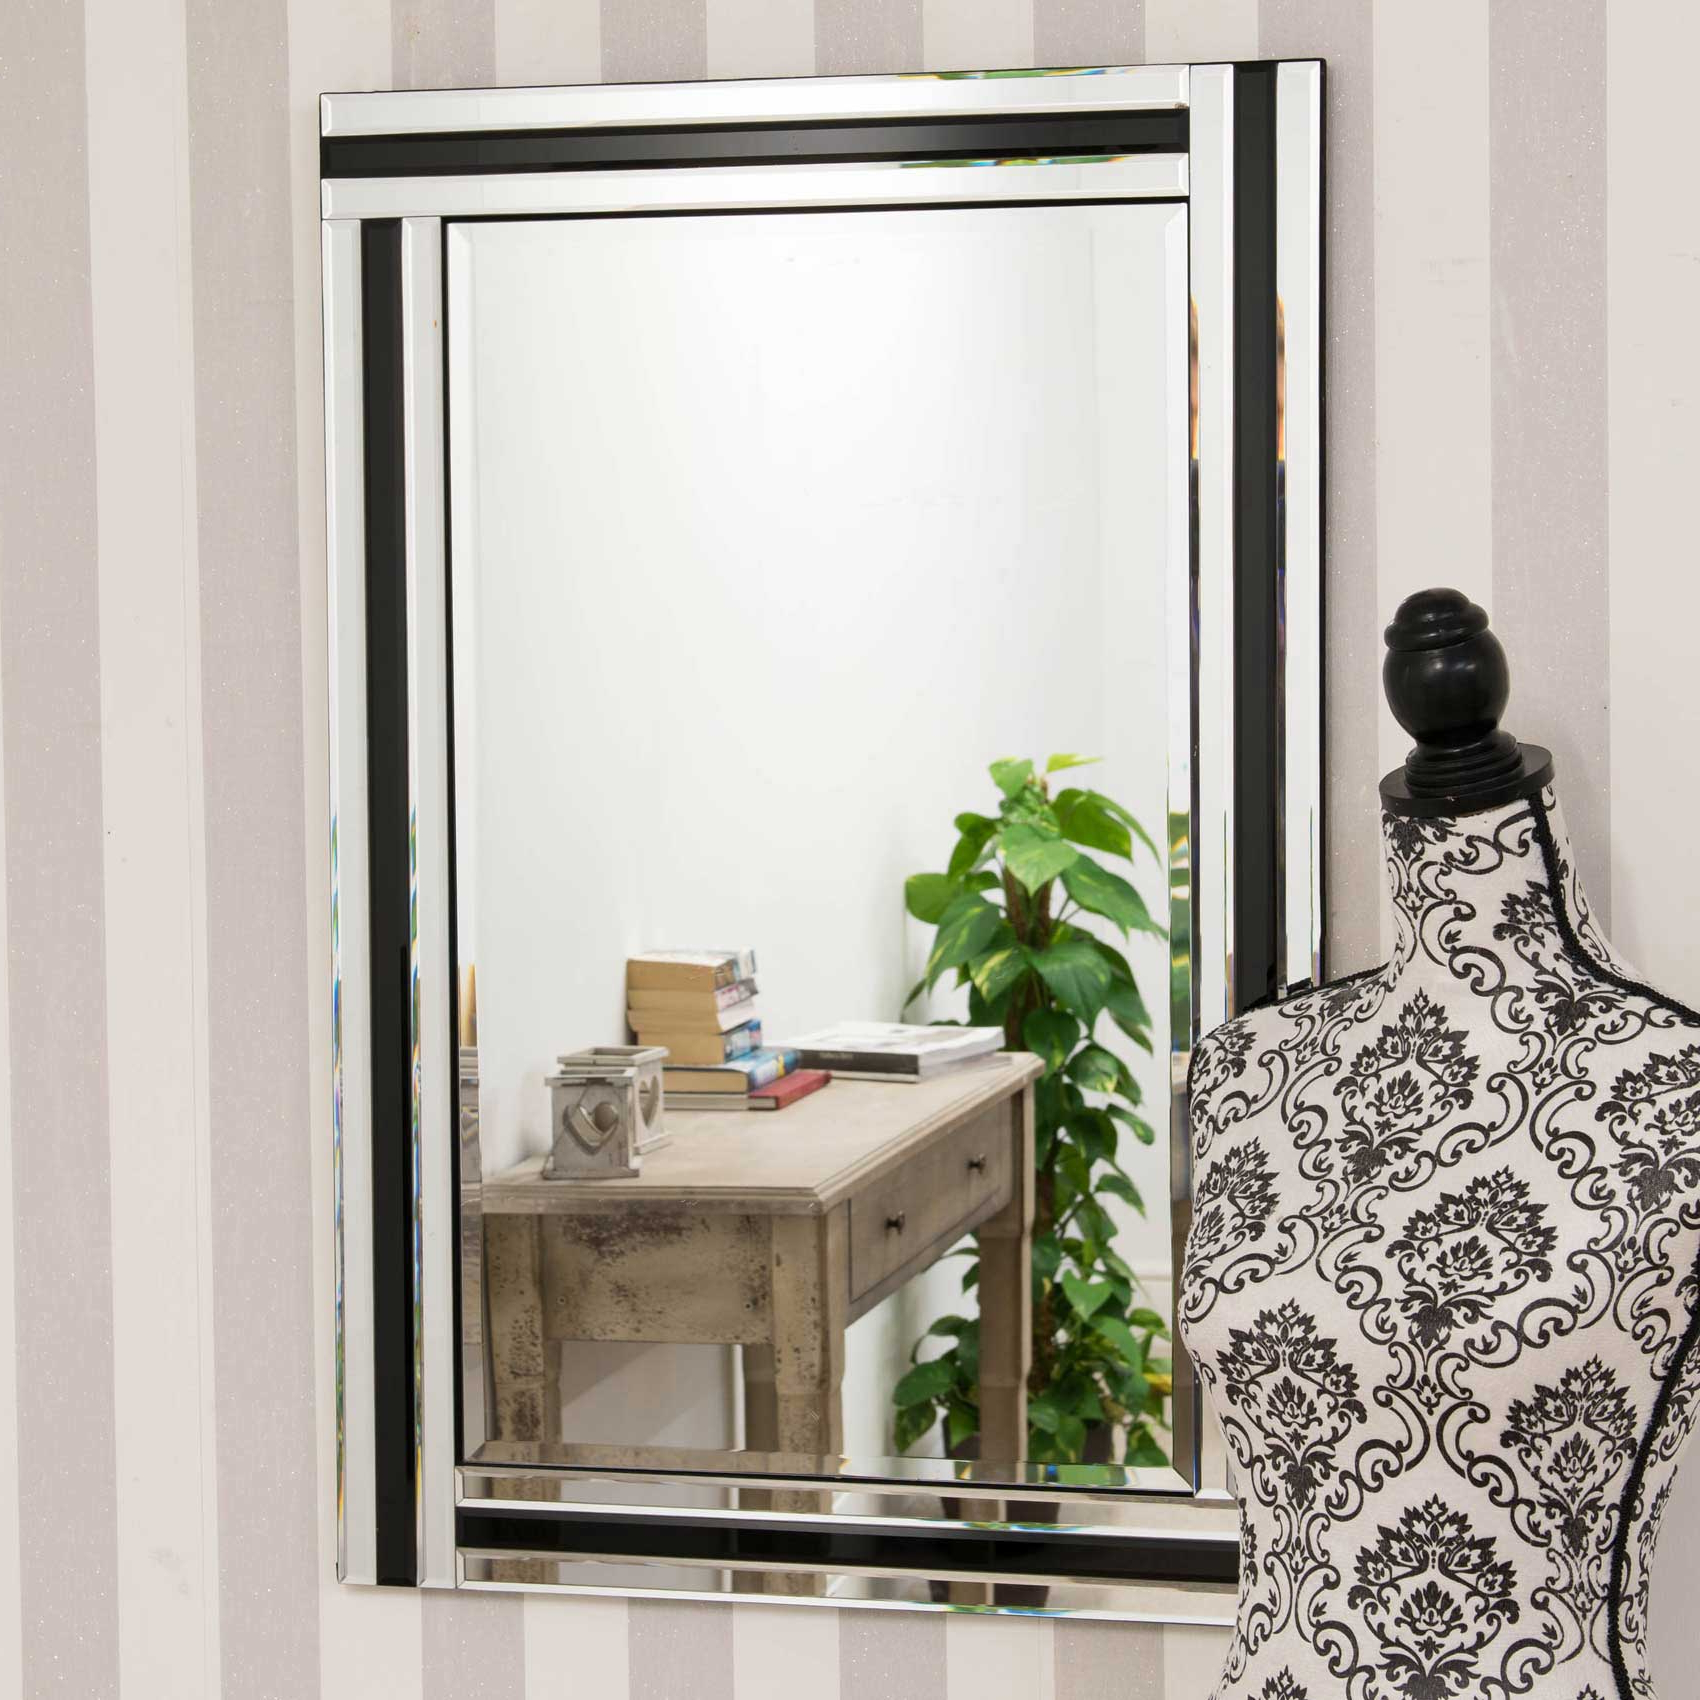 Most Popular Details About Large Wall Mirror Stylish Black And Silver Triple Bevelled Edge 1ft11 X 2ft11 In Extra Large Bevelled Edge Wall Mirrors (View 8 of 20)